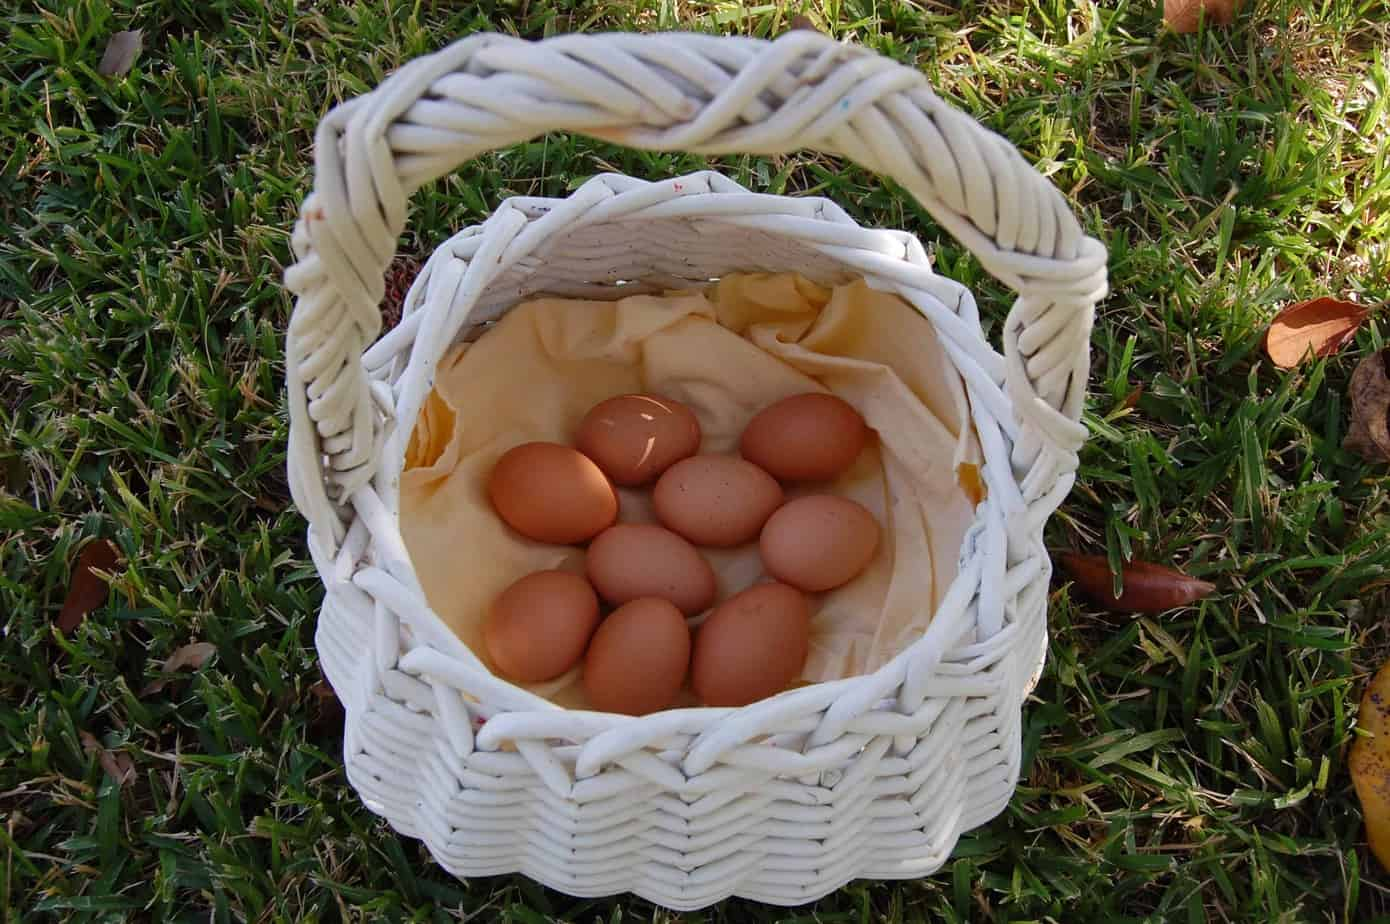 raising backyard chickens in the city limits